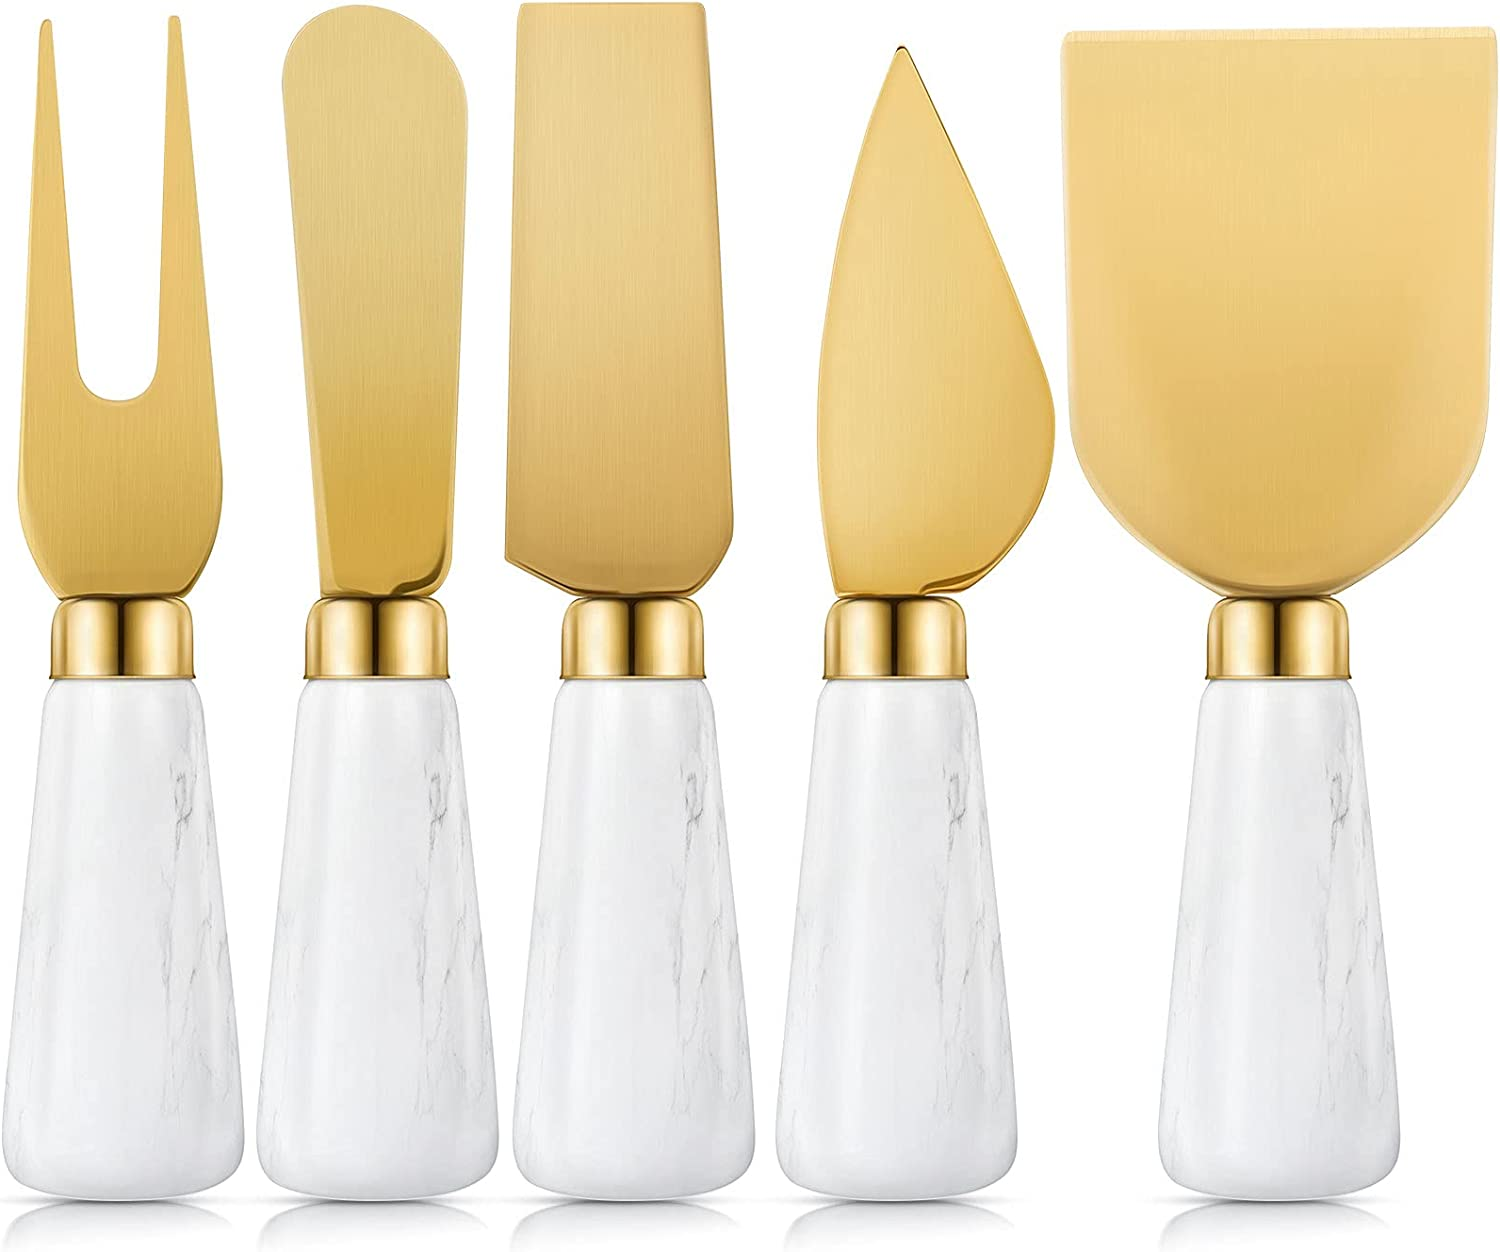 5 Pieces Gold Cheese Knives Set Cheap mail order specialty store Co wholesale Steel Stainless